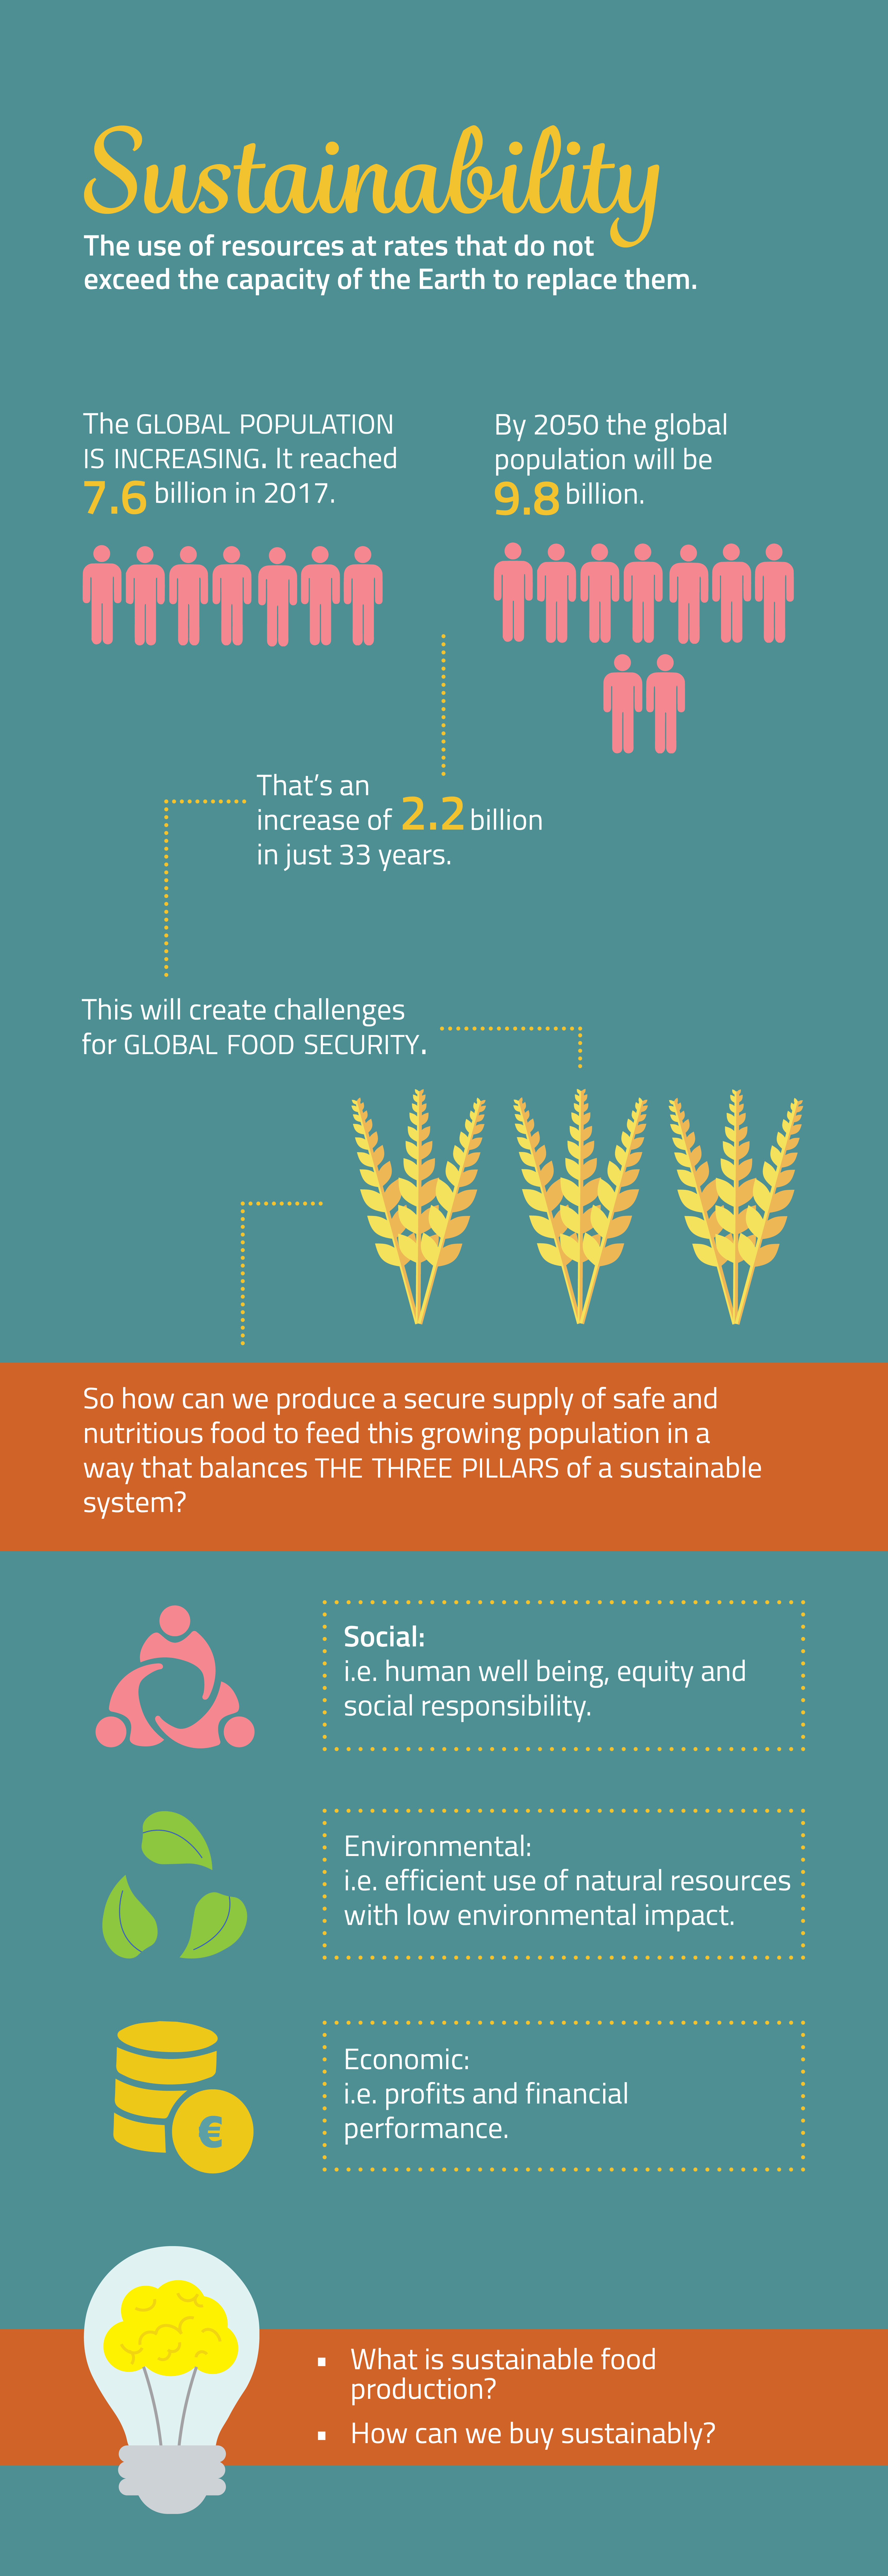 Infographic: Sustainability. The use of resources at rates that do not exceed the capacity of the Earth to replace them. - The global population is increasing. It reached billion in 2017. - By 2050 the global population will be billion. That's an increase of billion in just 33 years. - This will create challenges for global food security. - So how can we produce a secure supply of safe and nutritious food to feed this growing population in a way that balances the three pillars of a sustainable system? Social: i.e. human well being, equity and social responsibility. Economic: i.e. profits and financial performance. Environmental: i.e. efficient use of natural resources with low environmental impact. • What is sustainable food production? • How can we buy sustainably?